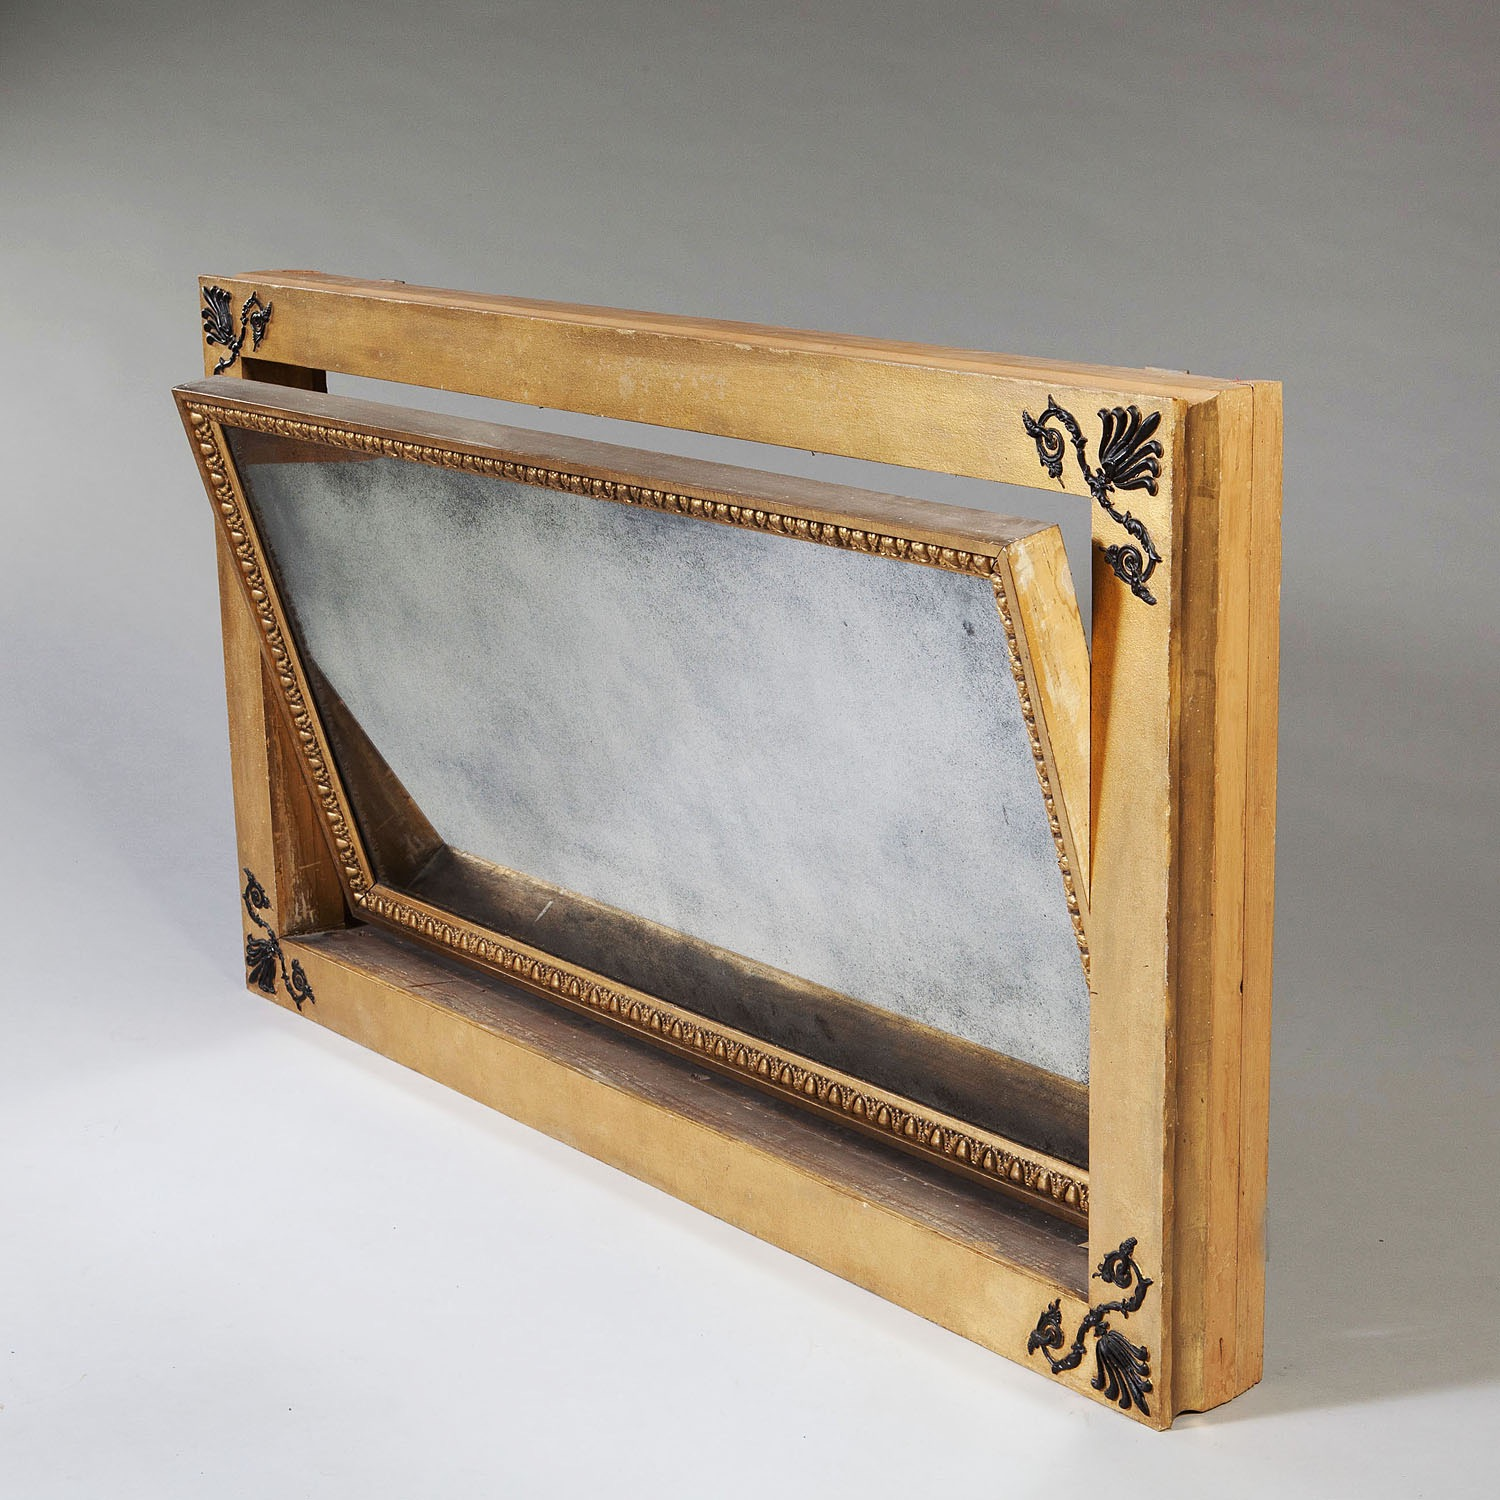 A rare and unusual Regency parcel gilt mechanical patent overmantel mirror. The reverse bears the trade label'Freeman, carver, gilder, and looking glass manufacturer of London and Swan Lane, Norwich'.